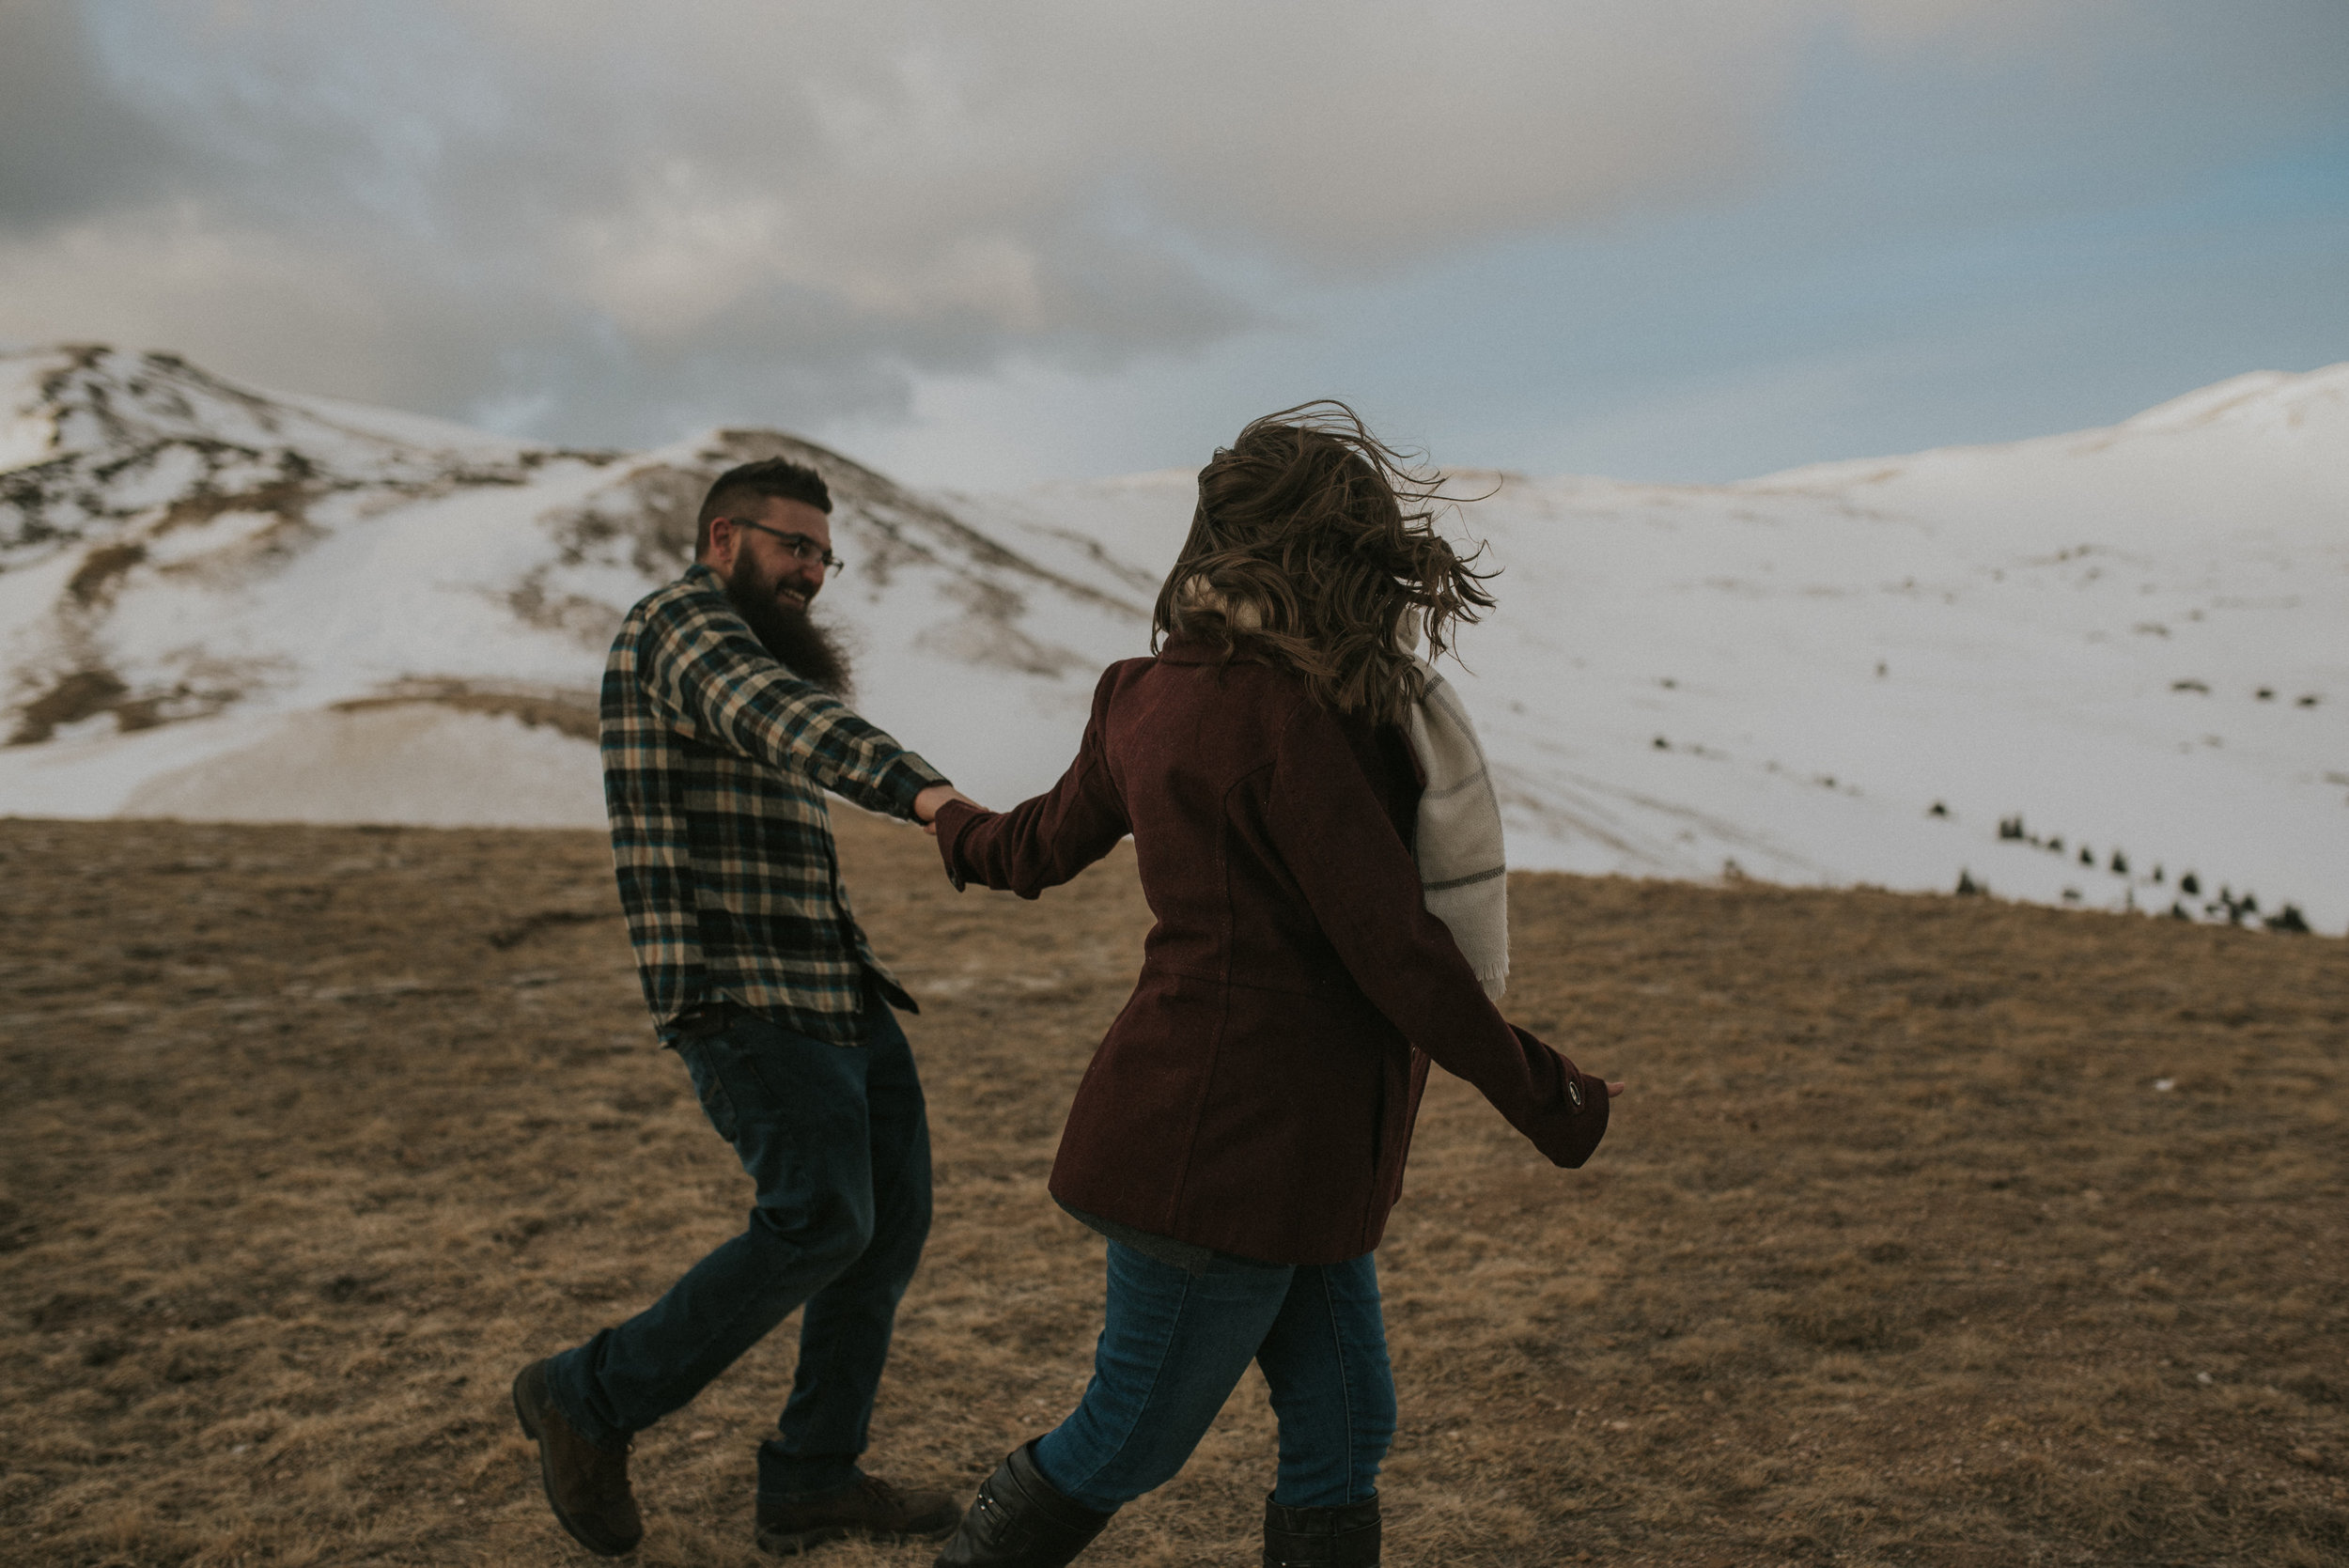 Adventure elopements & engagement sessions in Colorado.